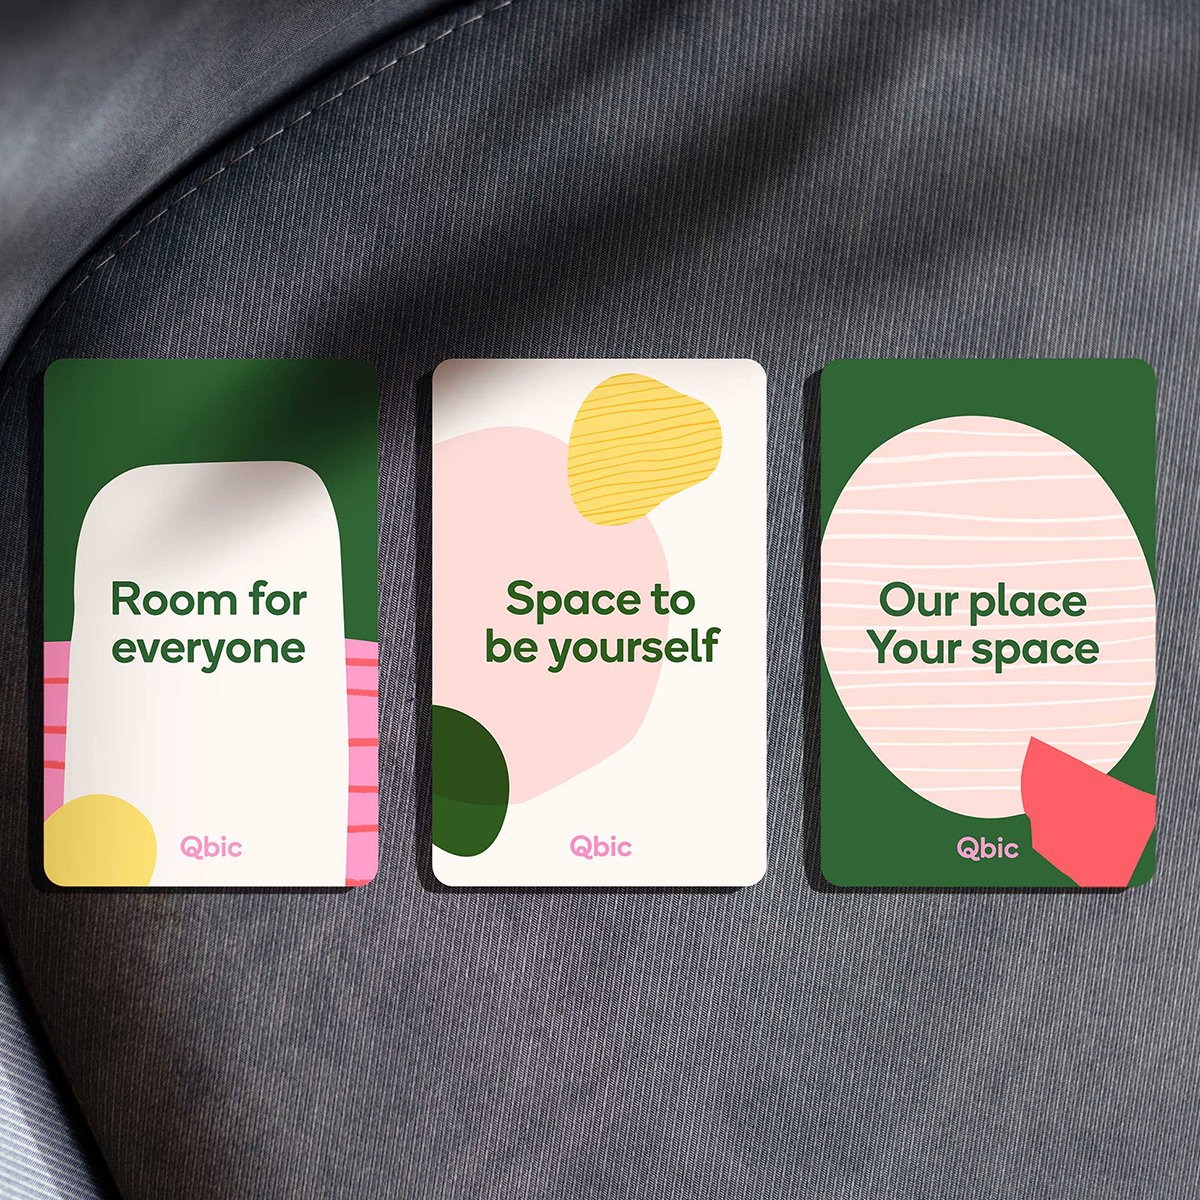 Ragged Edge Rebrands Qbic - A Hotel Where Weird Is Welcome